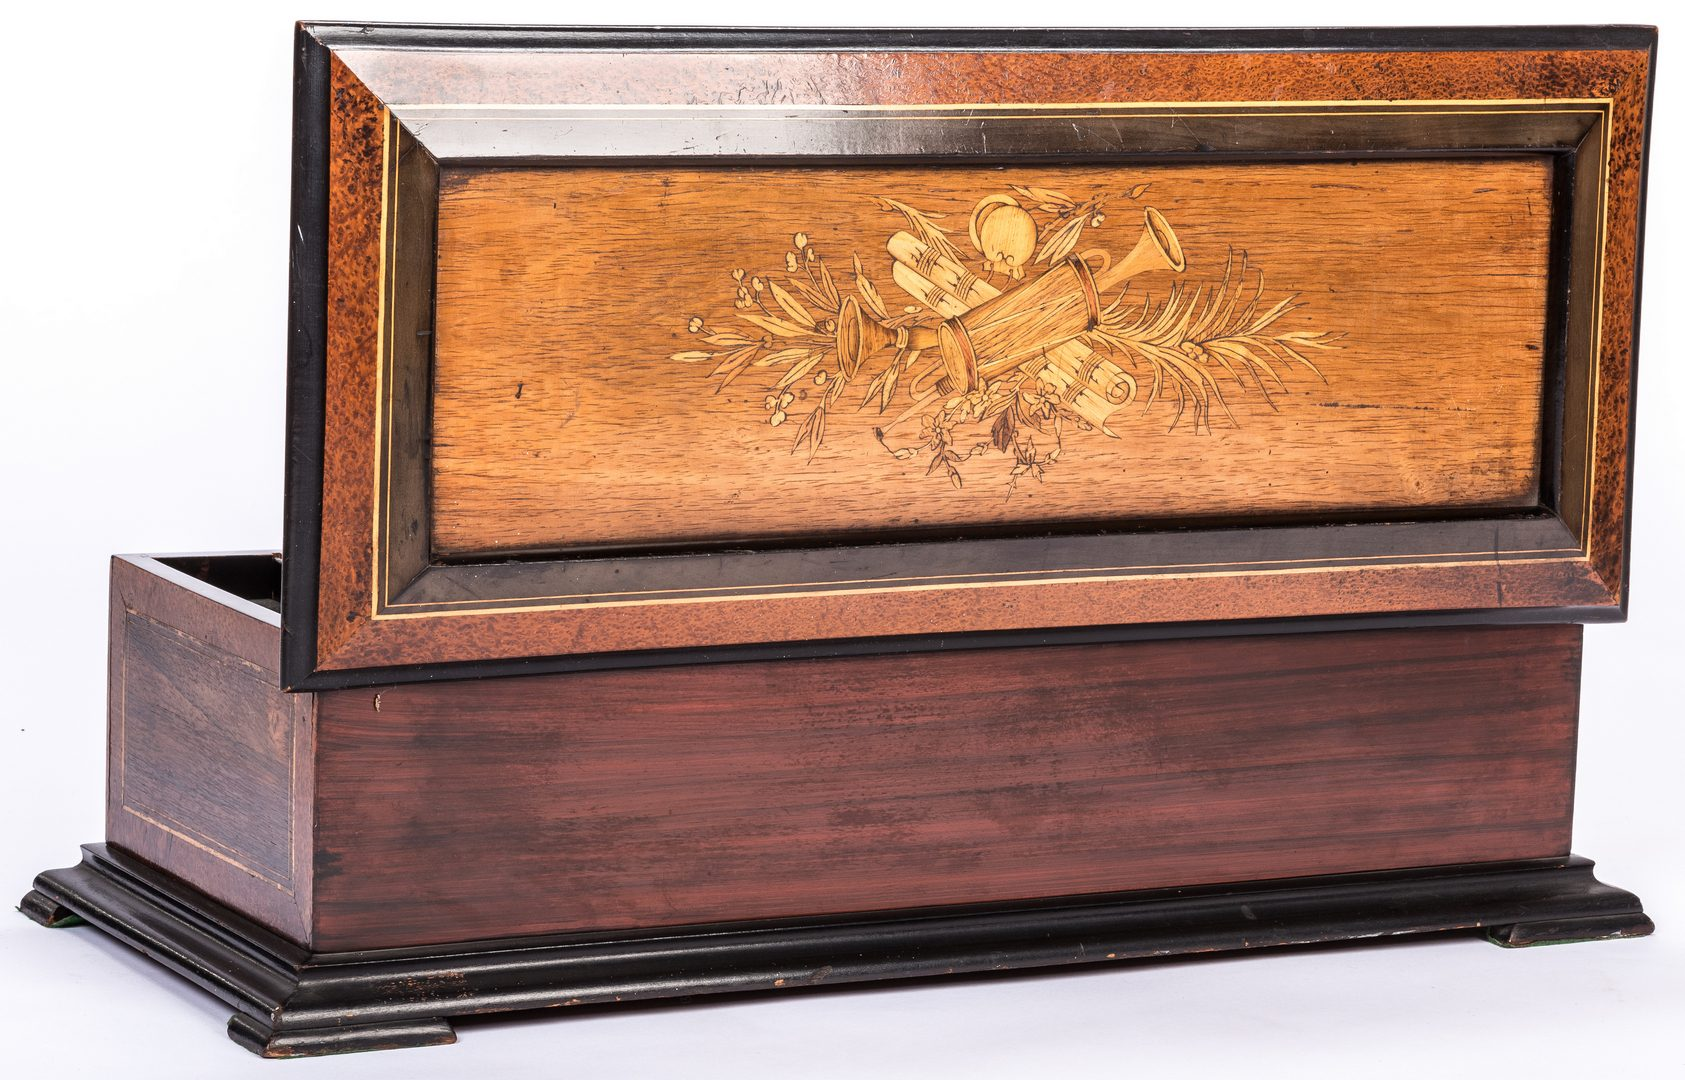 Lot 784: Swiss Cylinder Music Box w/ Marquetry Inlay